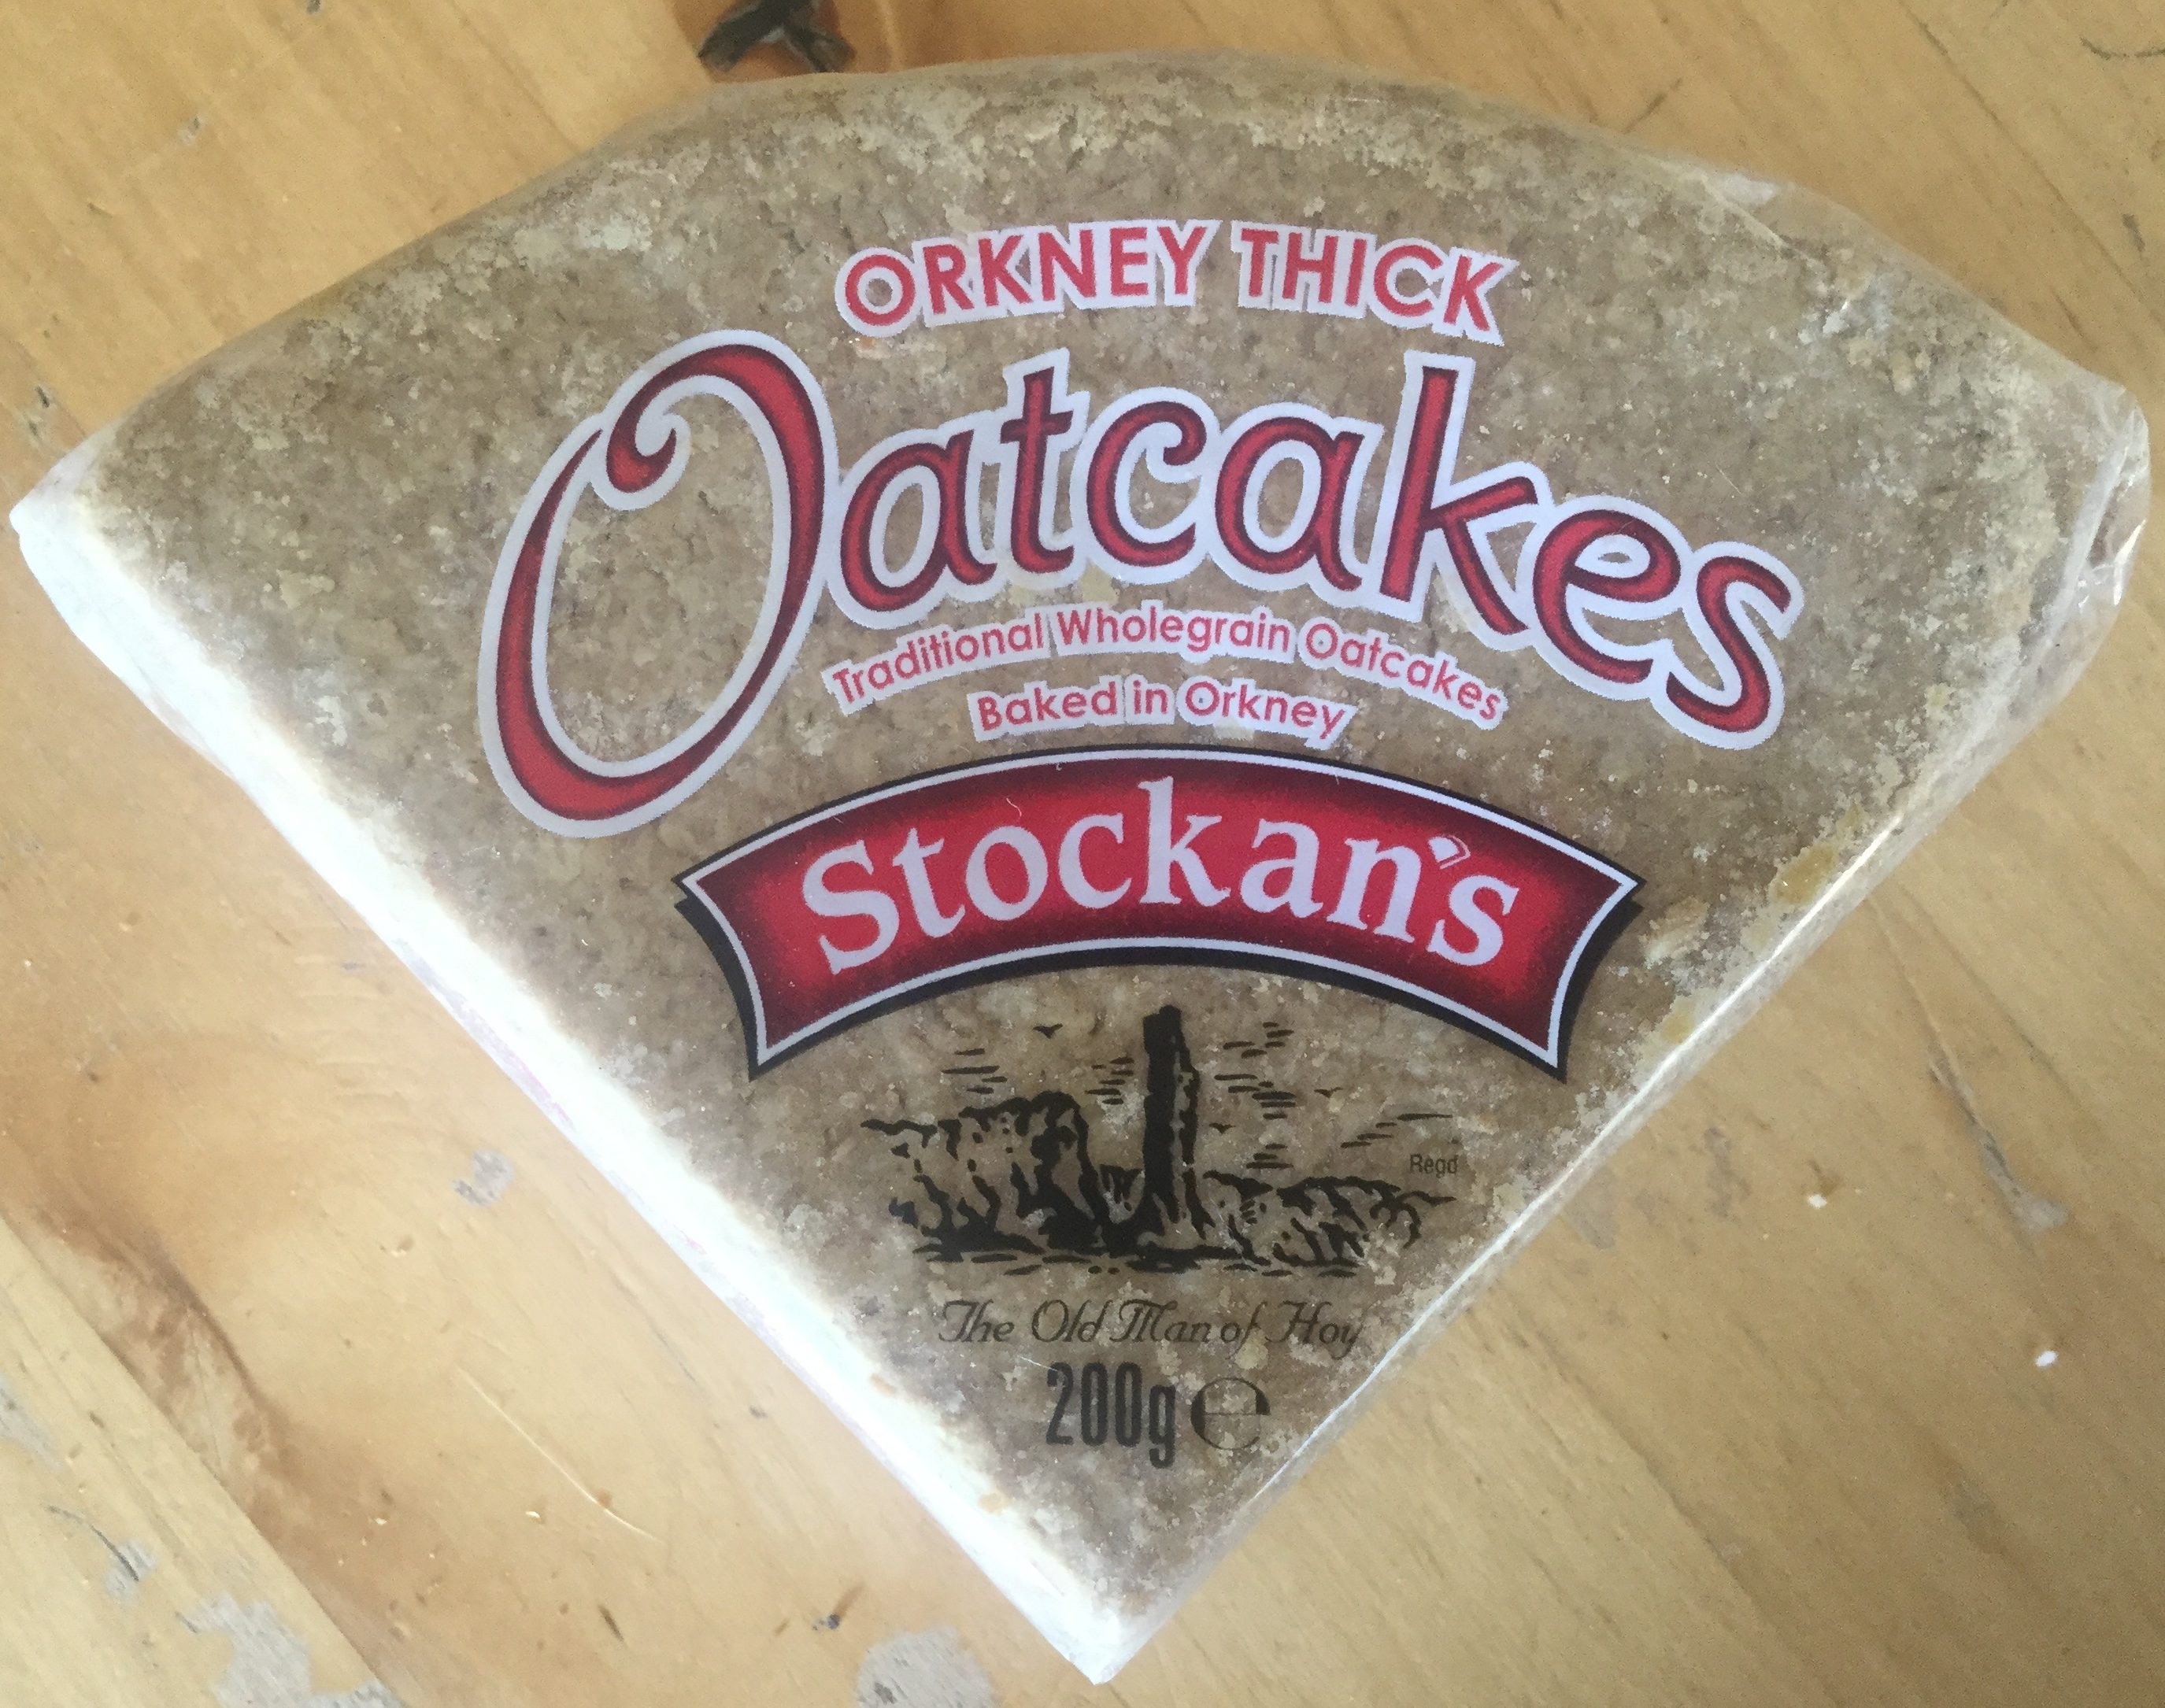 Orkney thick oatcakes - Product